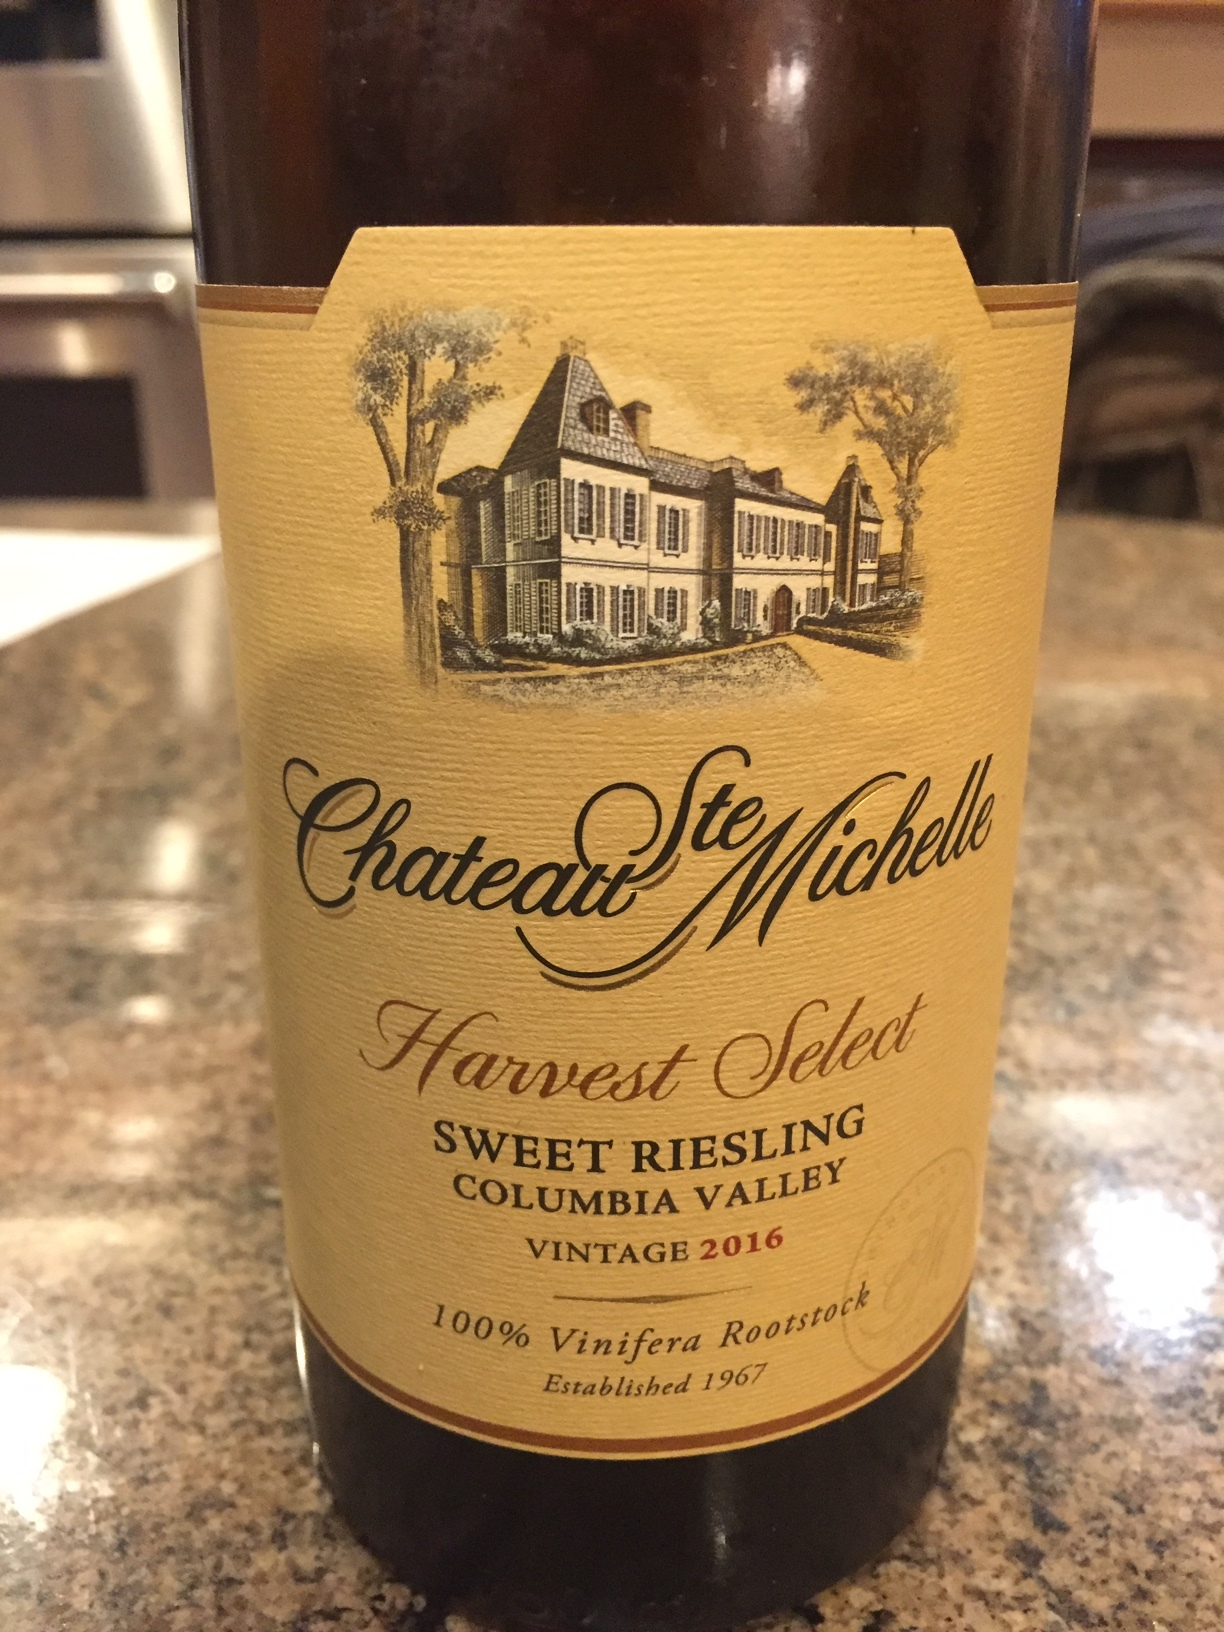 Episode 36: WHITE - Chateau St. Michelle Harvest Select Sweet Riesling, Columbia Valley, Washington State